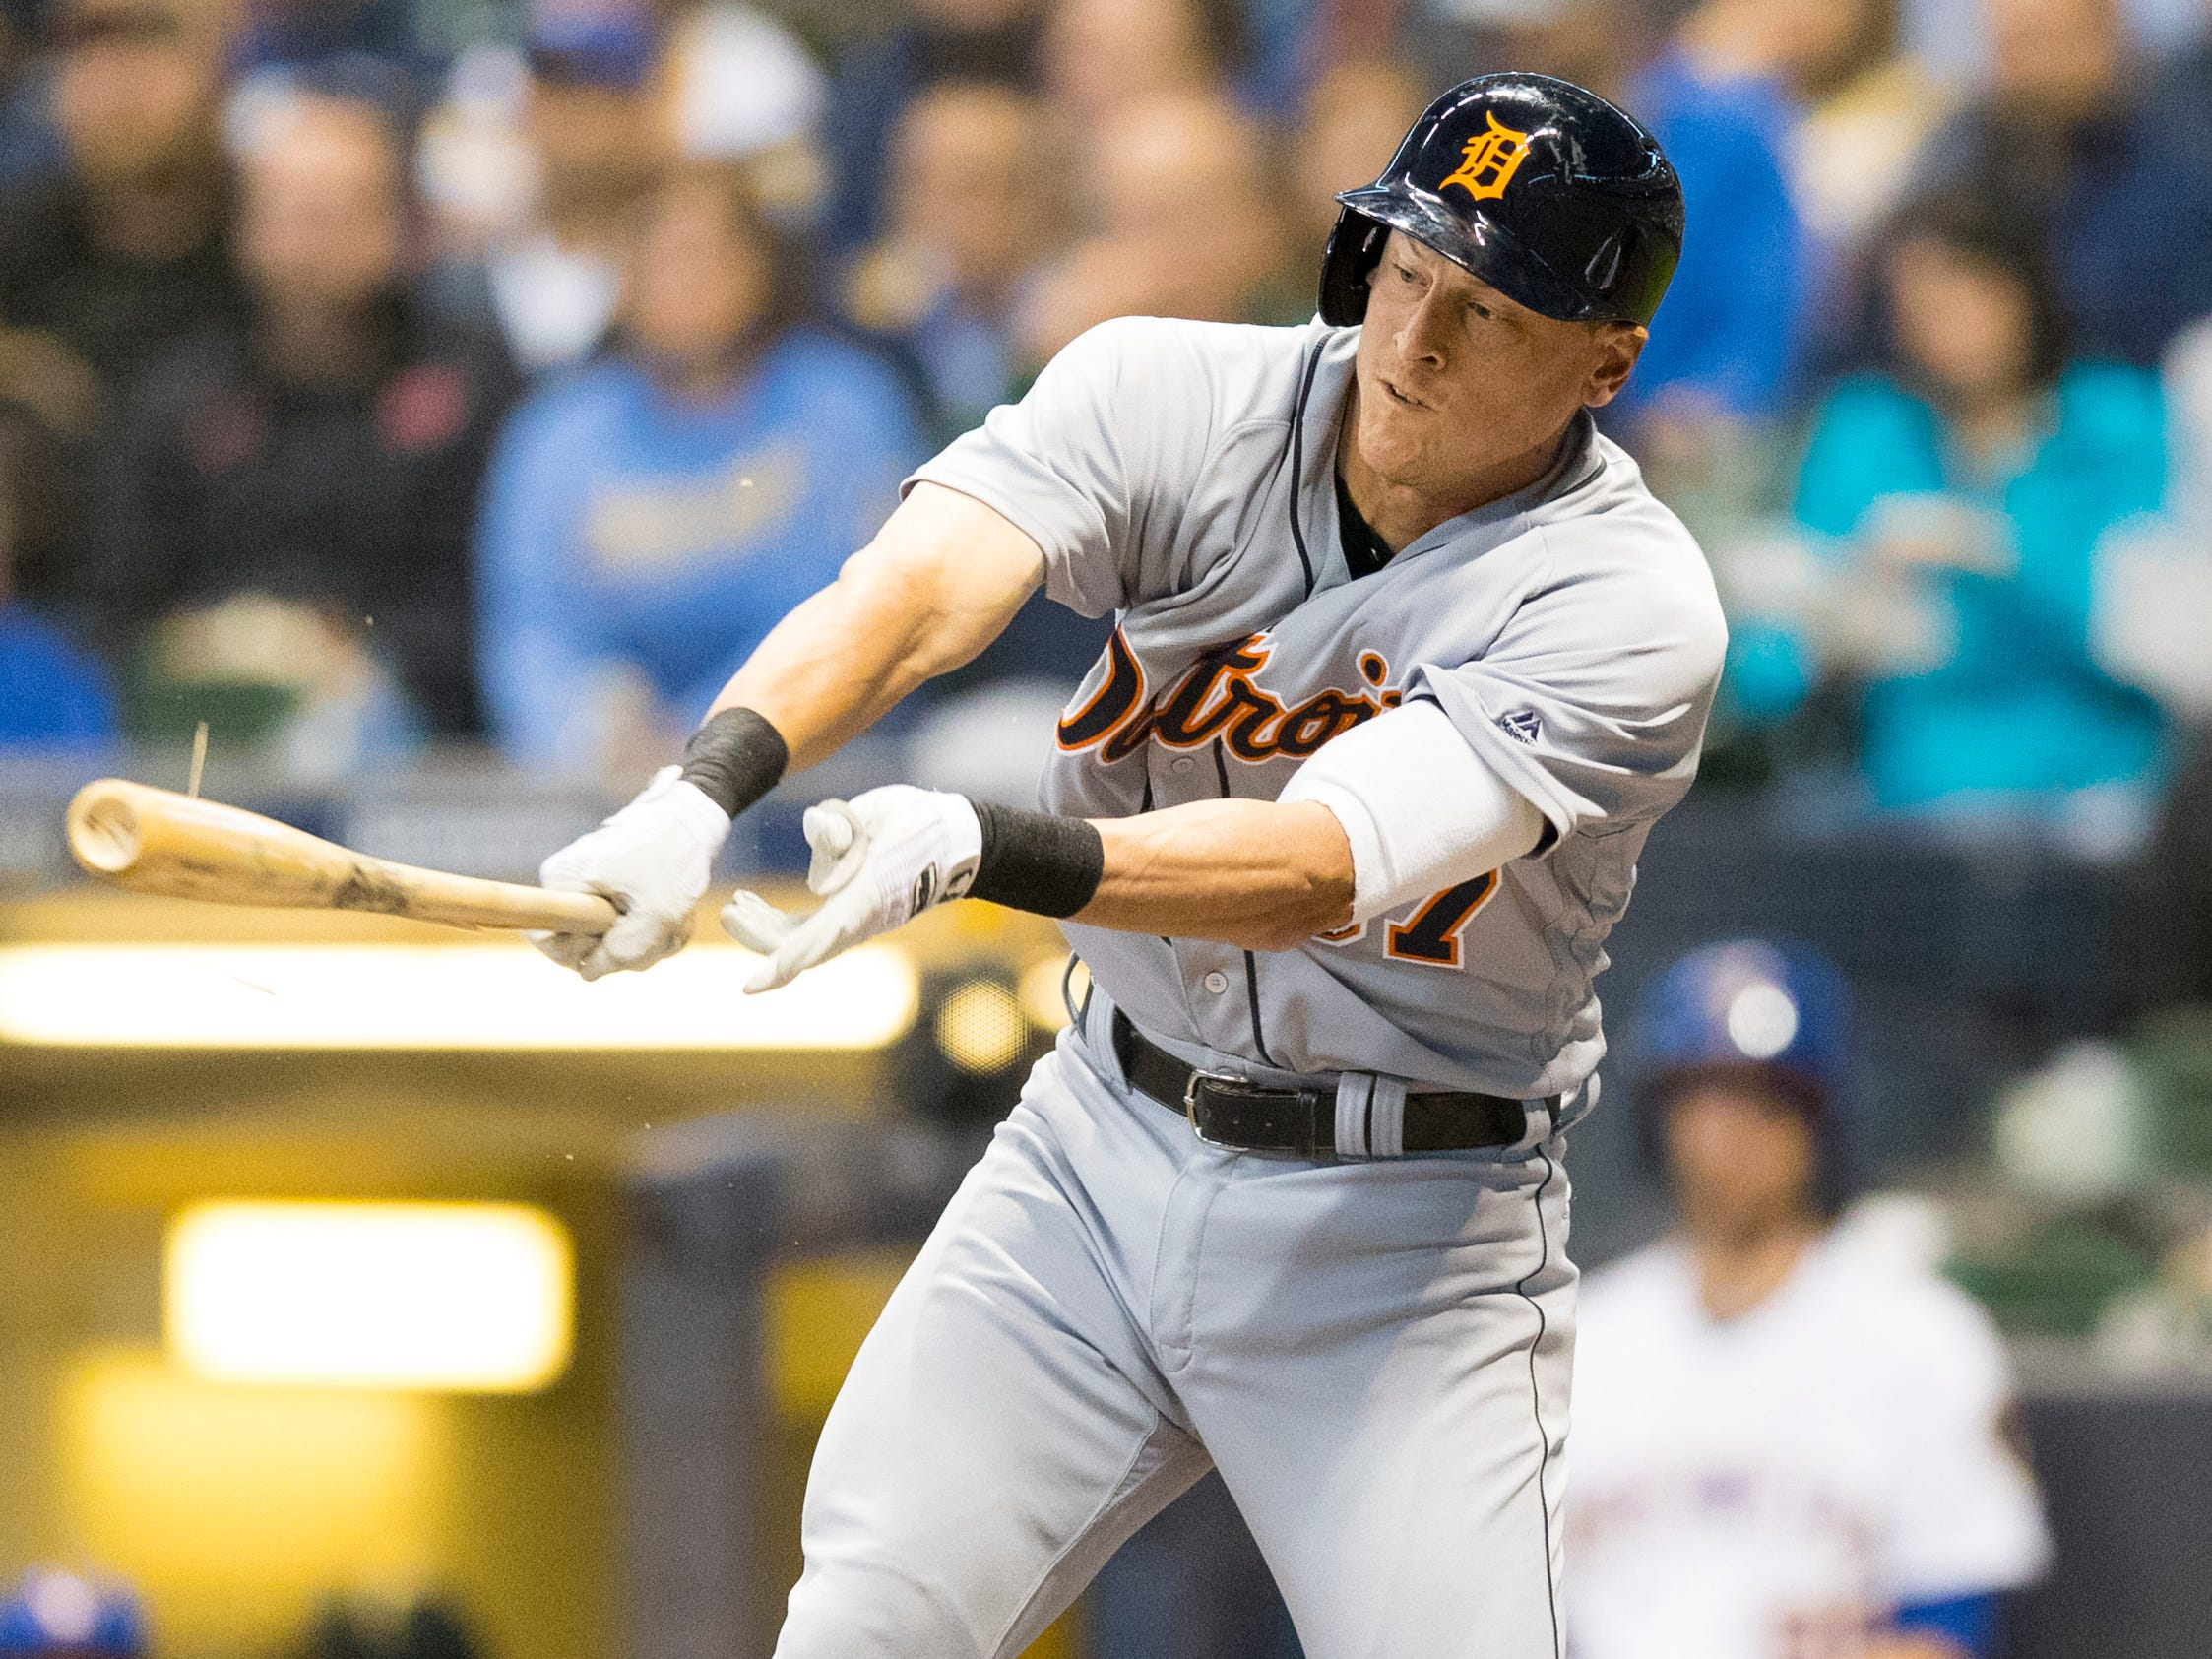 Detroit Tigers first baseman Jim Adduci hits an RBI single during the first inning against the Milwaukee Brewers at Miller Park, Sept. 28, 2018, in Milwaukee.